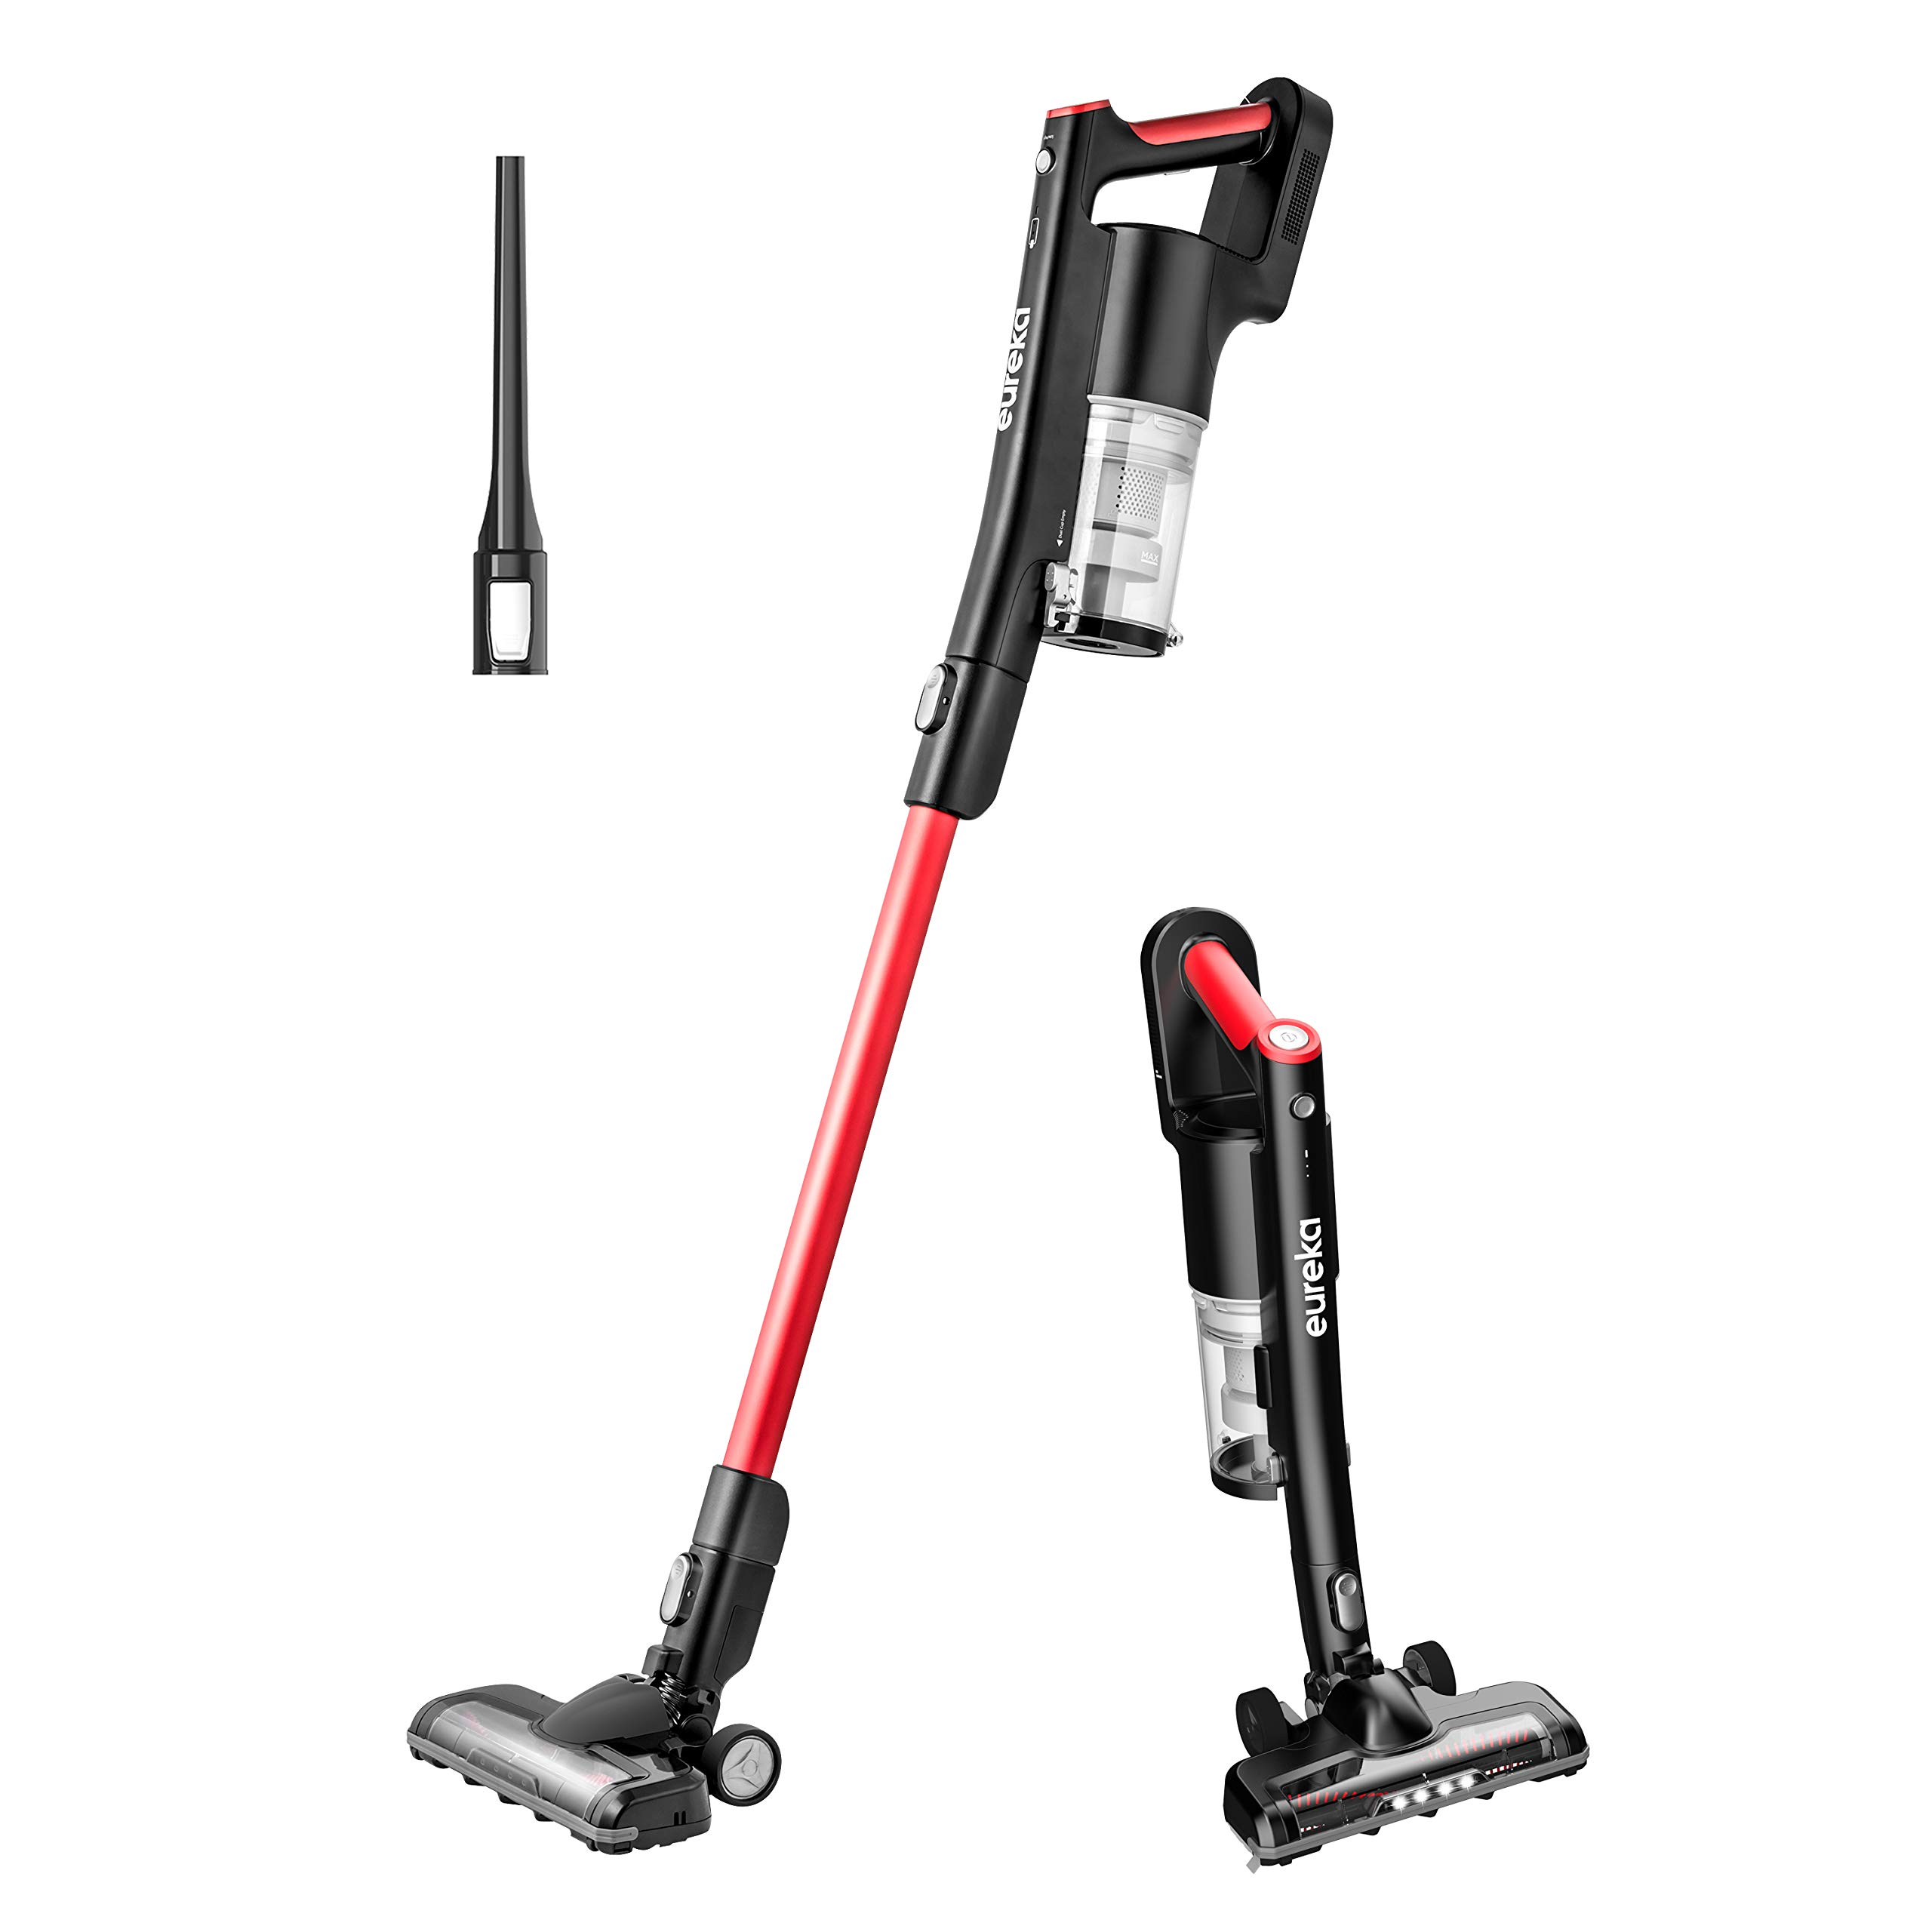 EUREKA RapidClean Pro Lightweight Cordless Vacuum Cleaner, High Efficiency Powerful Digital Motor LED Headlights, Convenient Stick and Handheld Vac, Basic Red